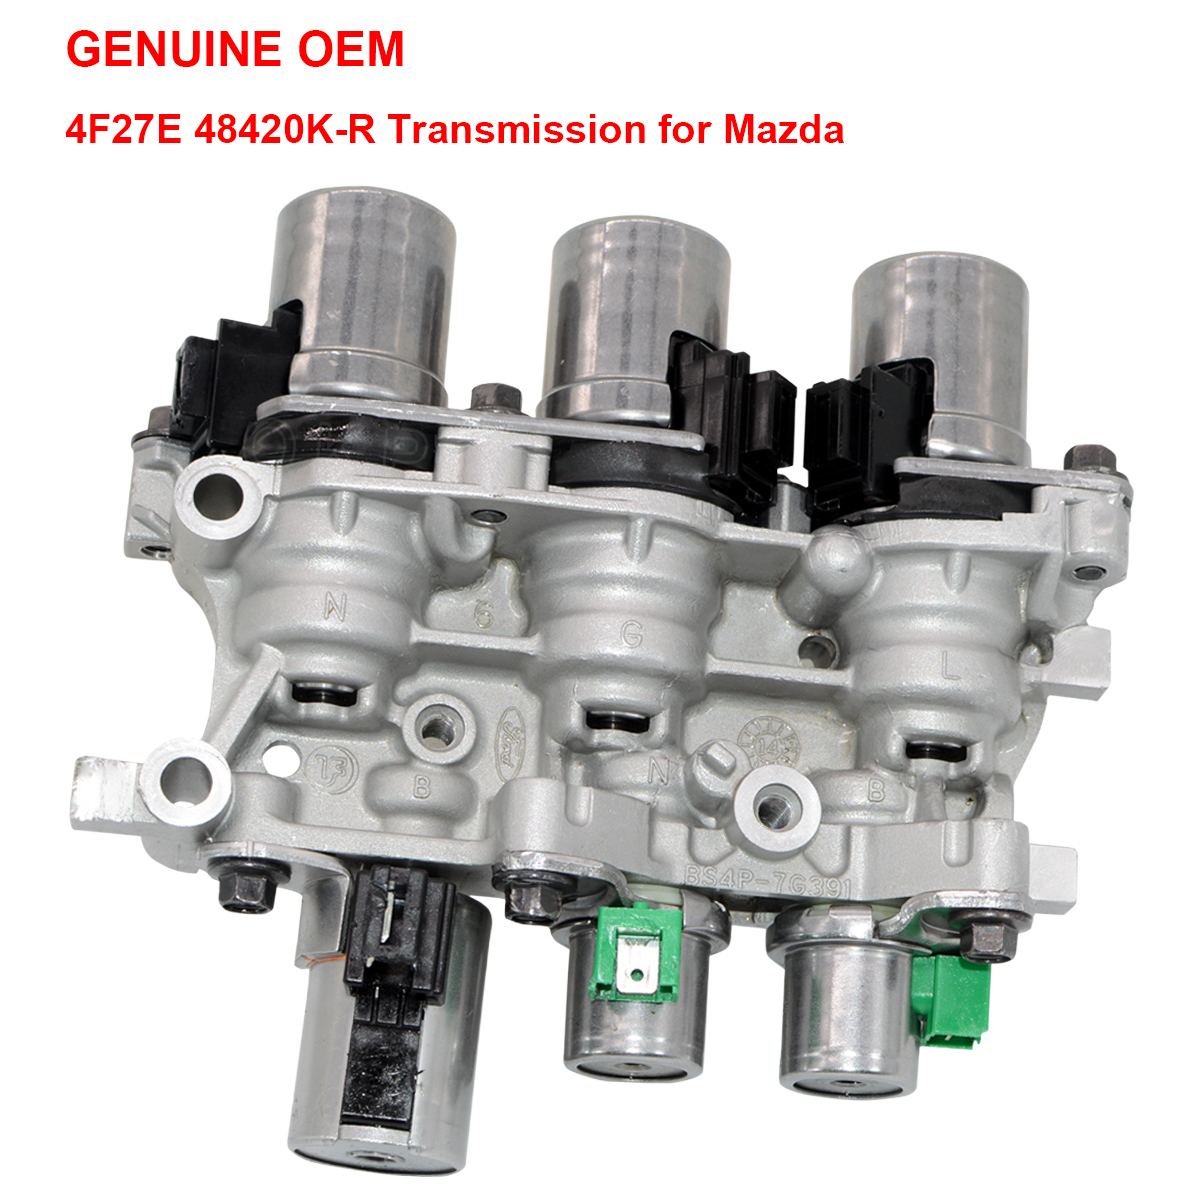 4F27E OEM Transmission Solenoid Block Pack for Ford Focus Mazda 4Spd  Automatic